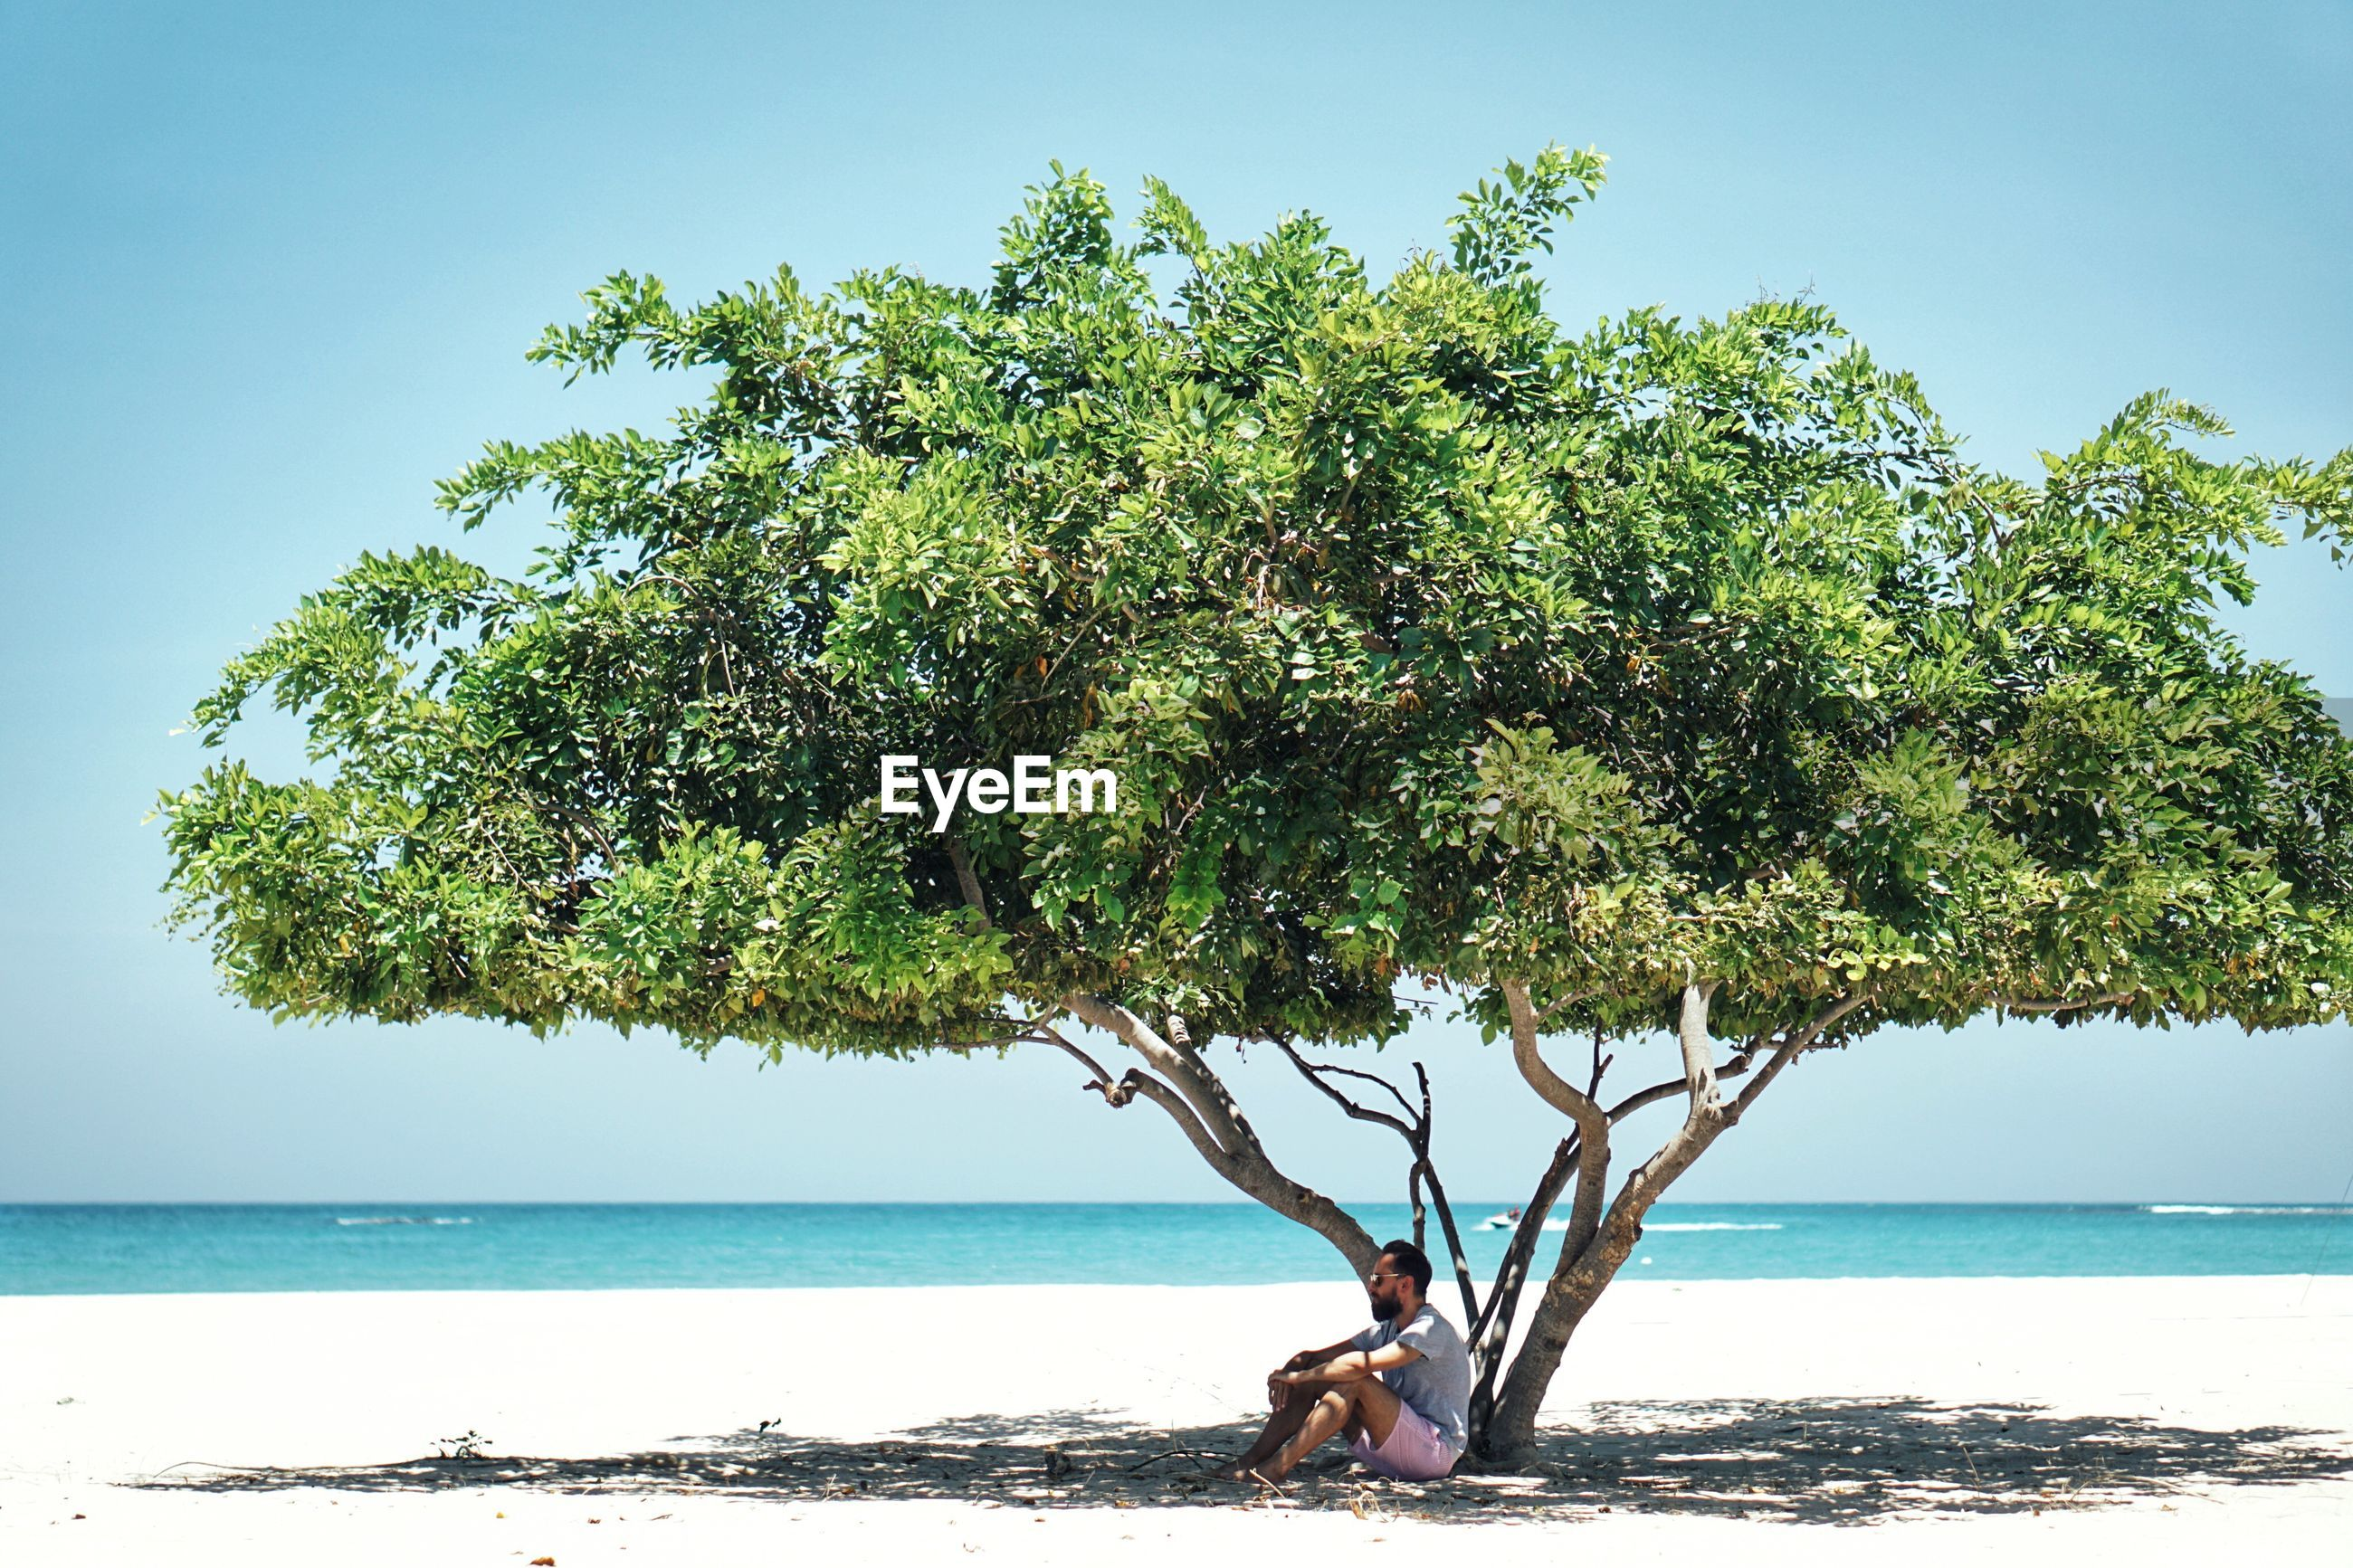 Man sitting by tree at beach